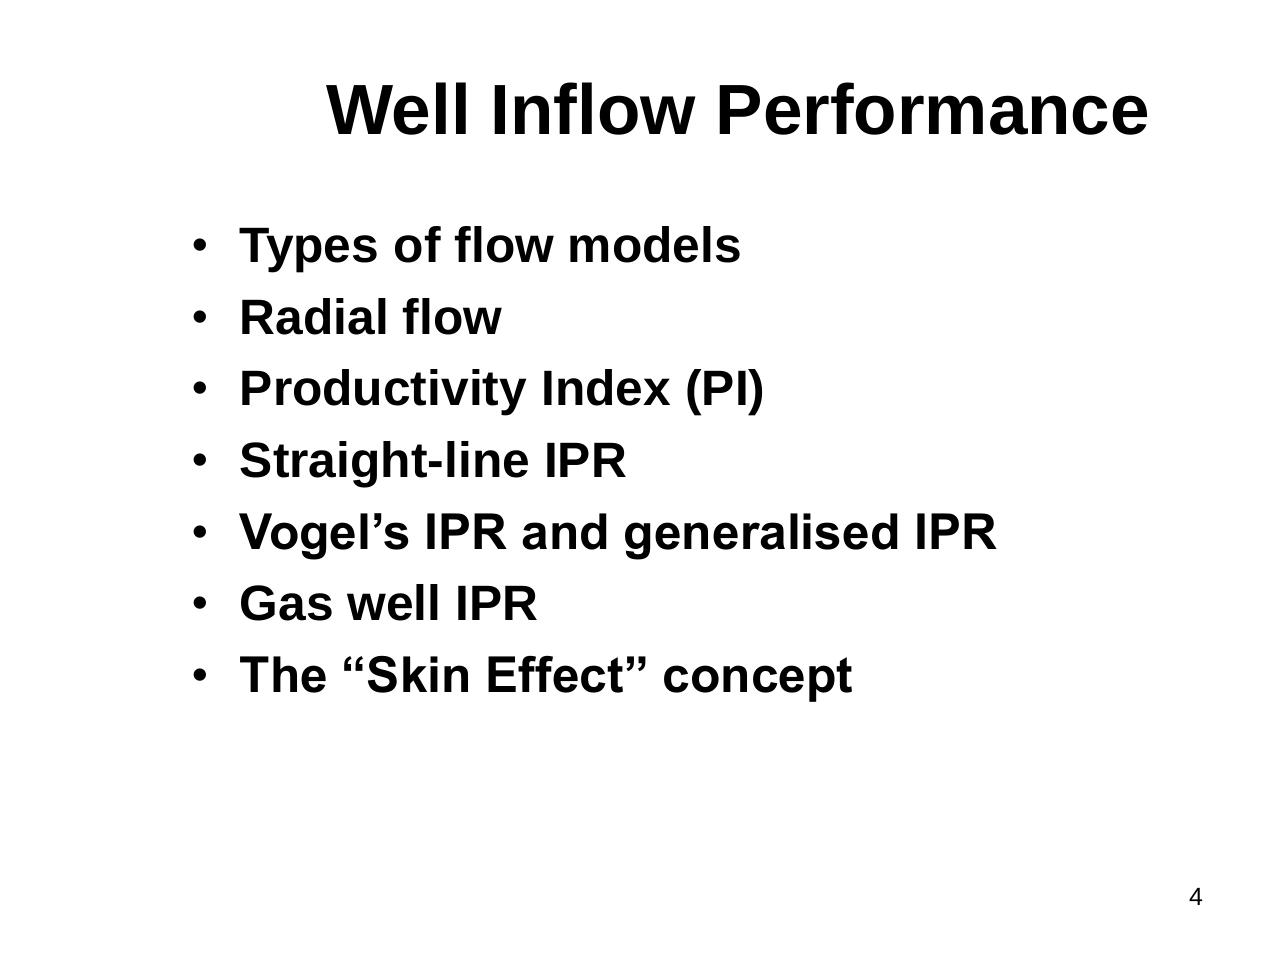 2.5 Well inflow performance1_1 (2).pdf - page 4/60